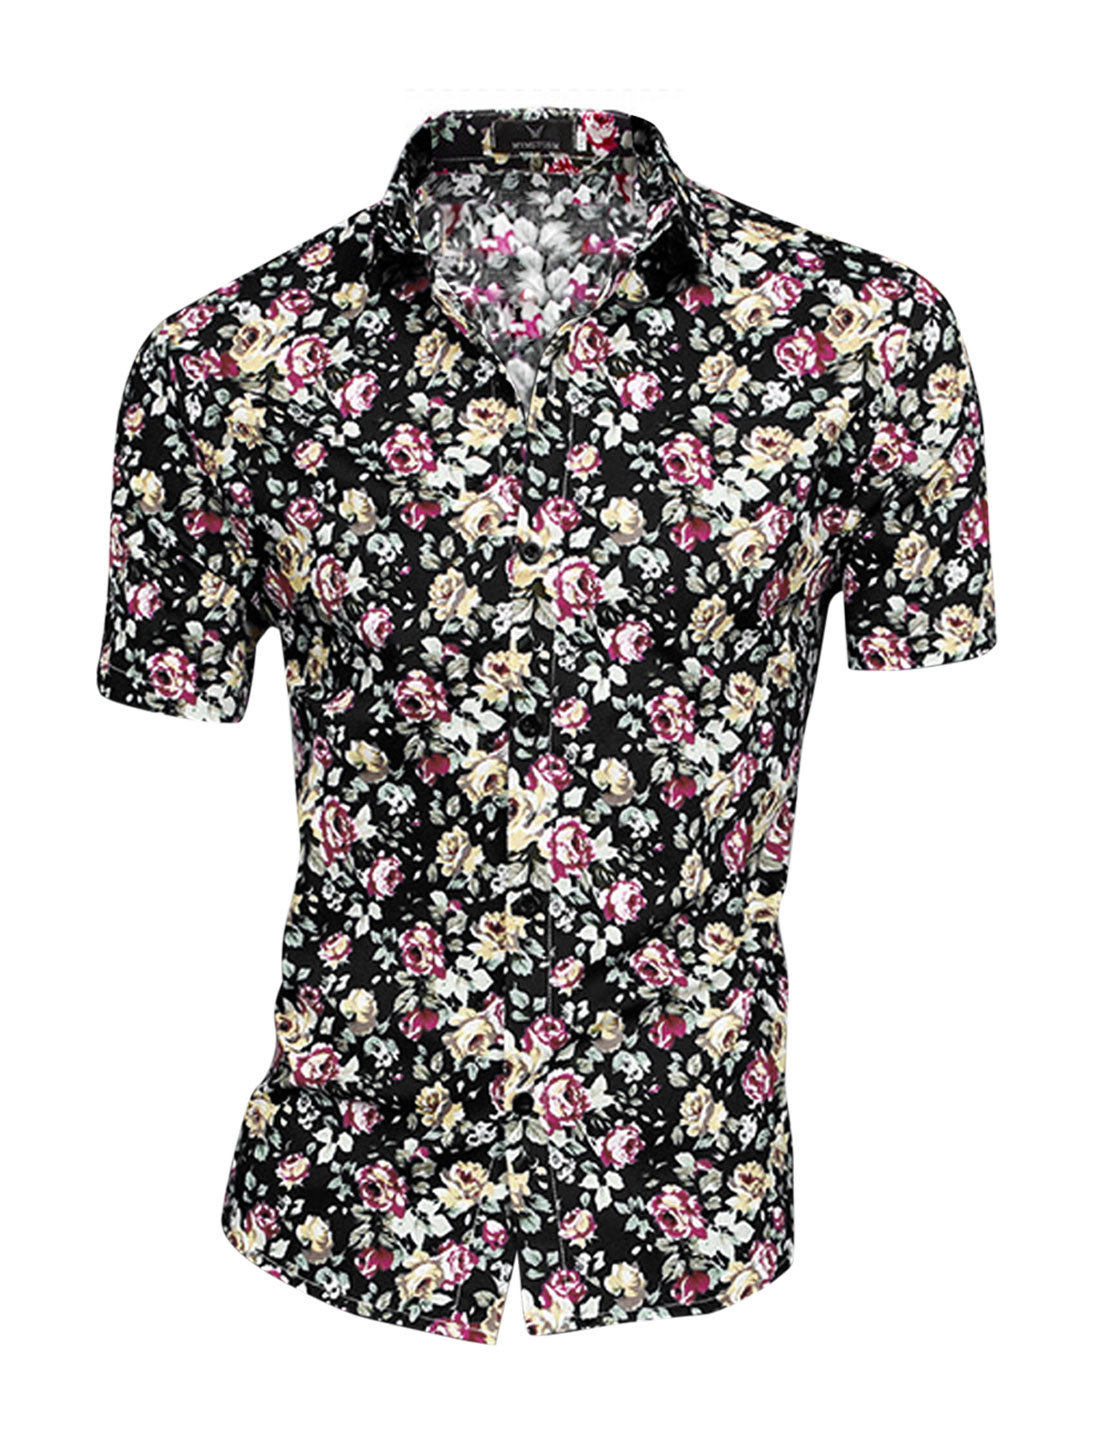 Men Chic Flower Pattern Single Breasted Casual Style Shirt Black Fuchsia M